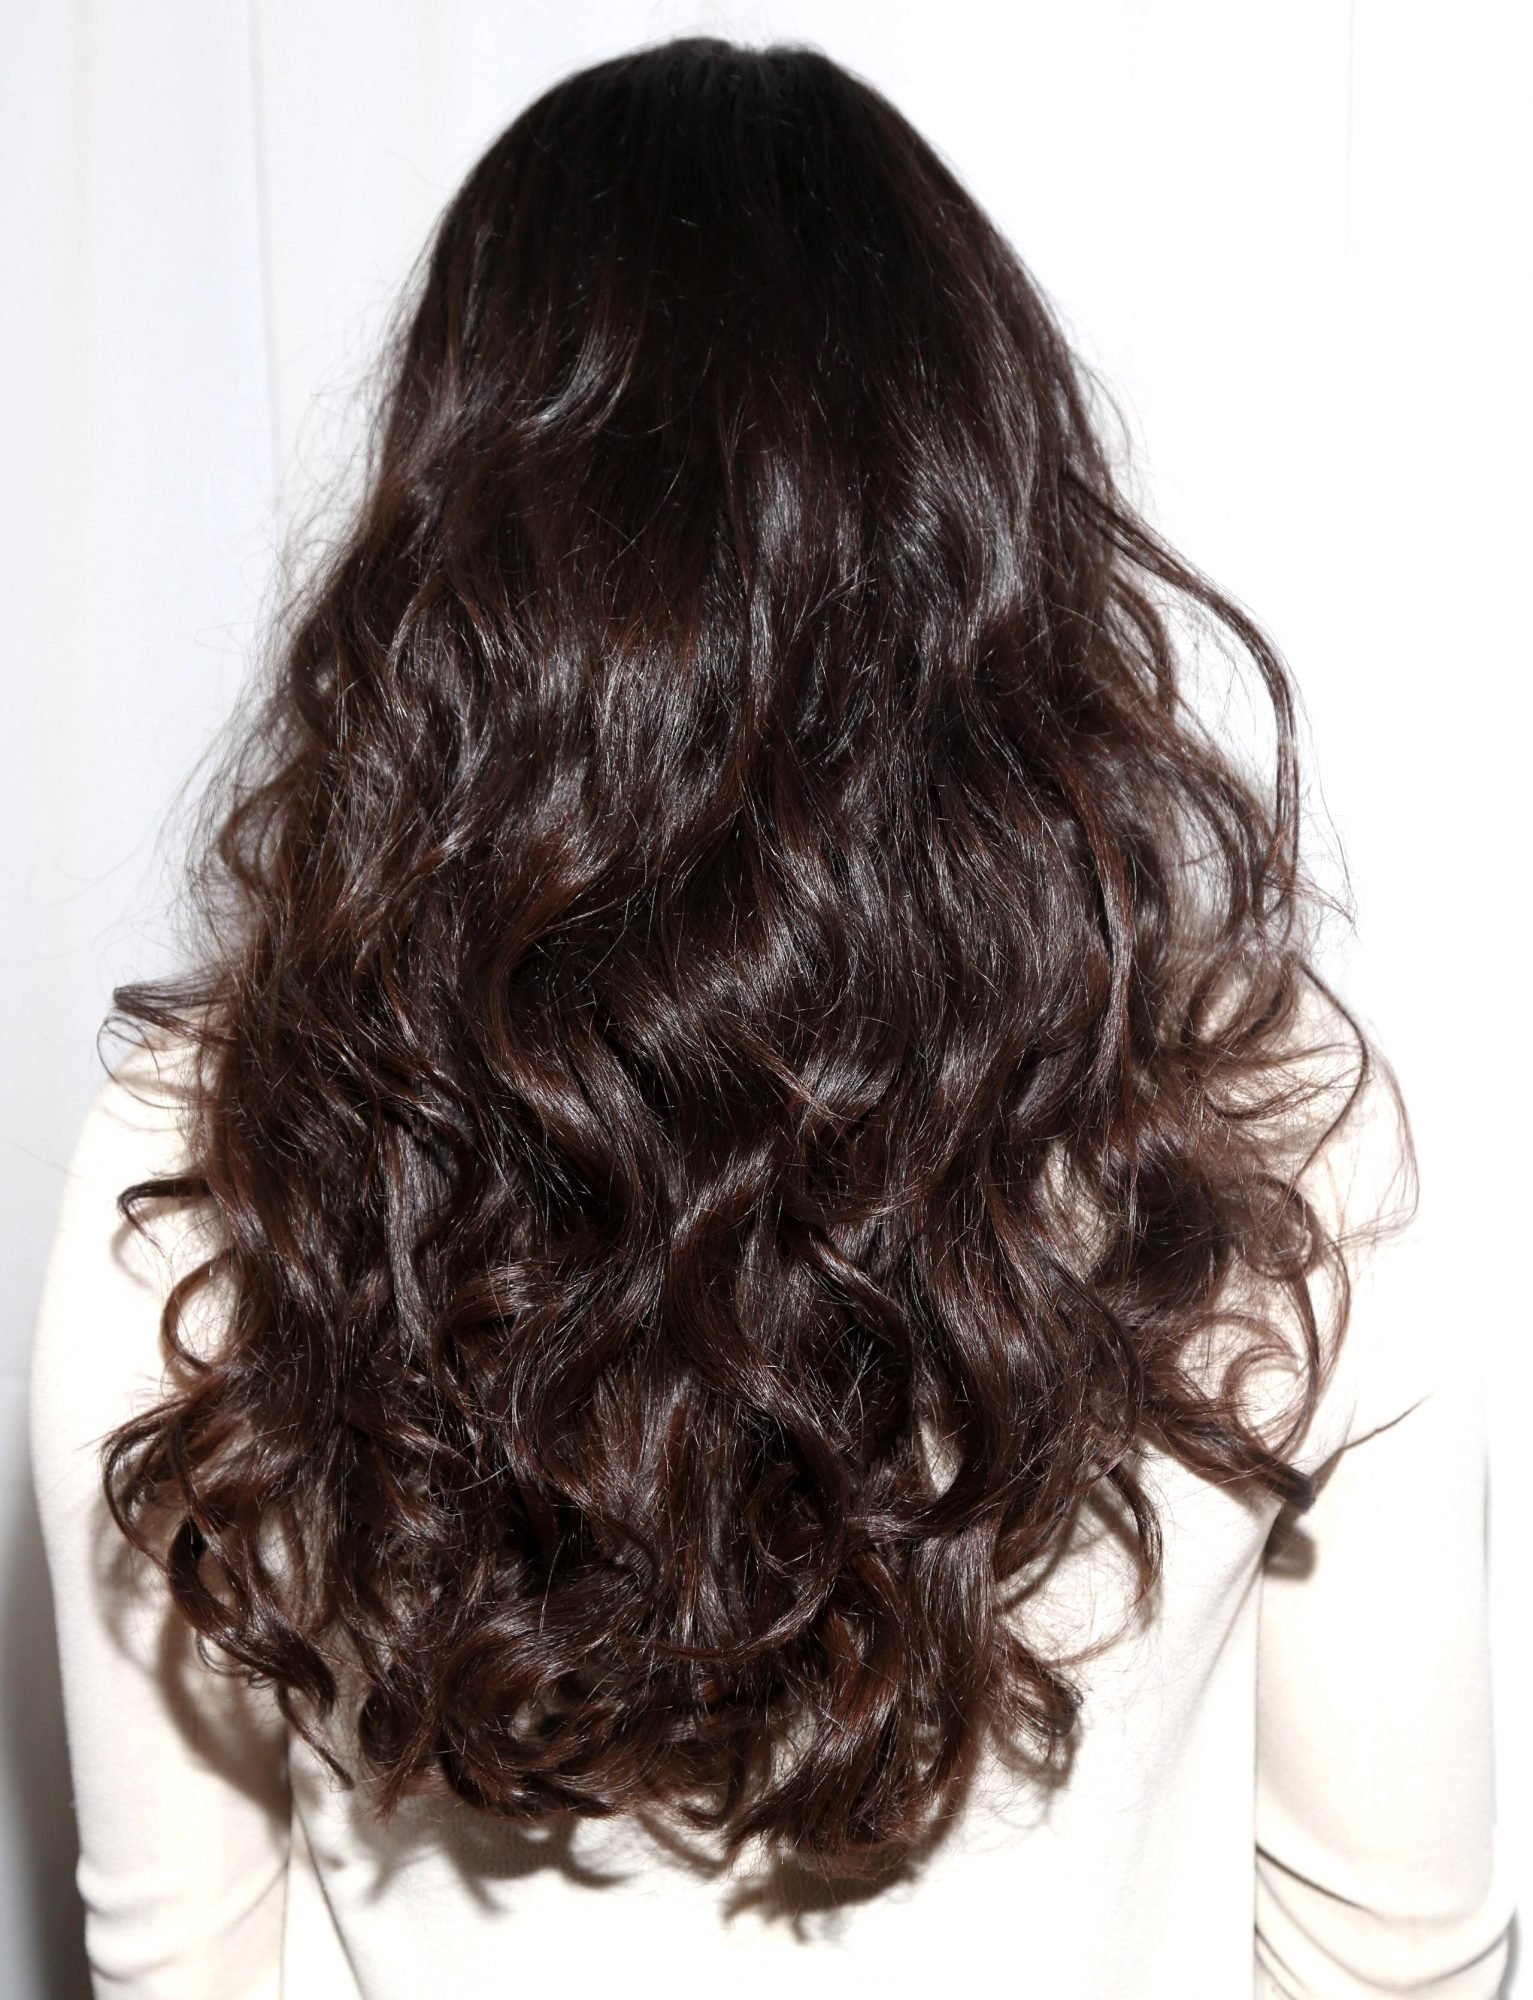 Than to clarify hair I want to lighten the tips of my hair. Can I lighten up at home. If it is possible, then what